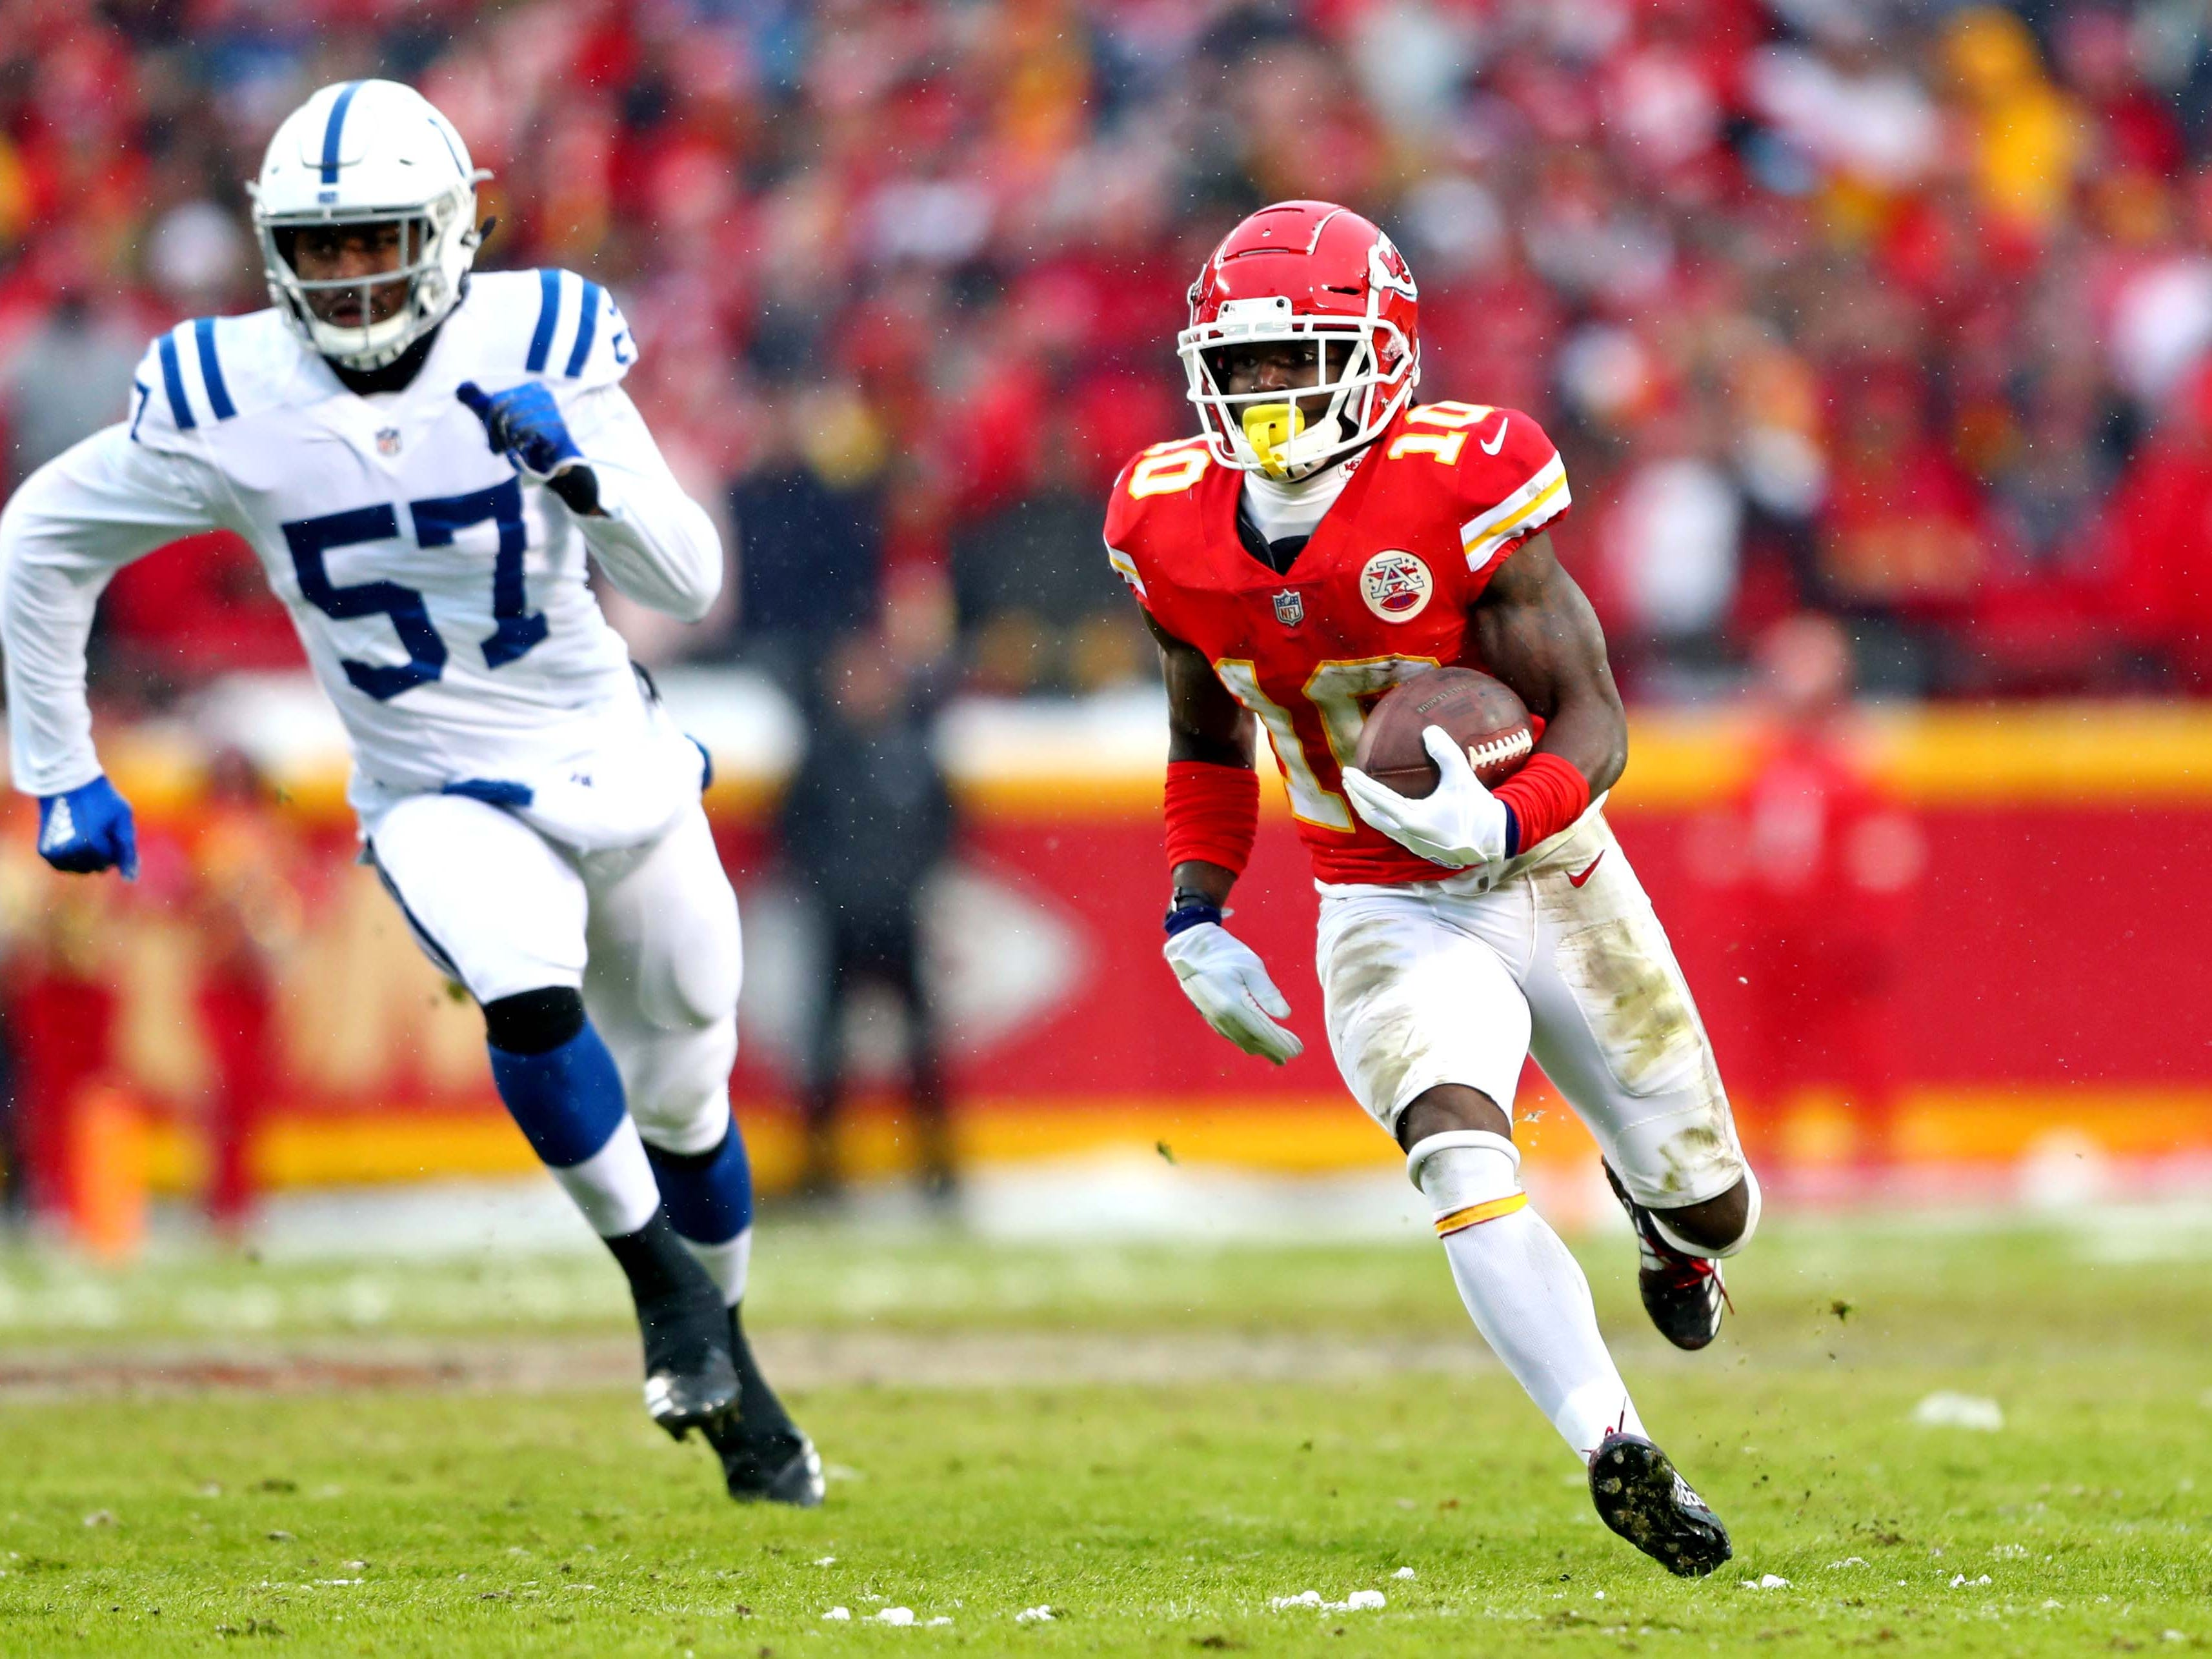 Kansas City Chiefs wide receiver Tyreek Hill (10) runs for a touchdown  during the first quarter against the Indianapolis Colts in an AFC Divisional playoff football game at Arrowhead Stadium.